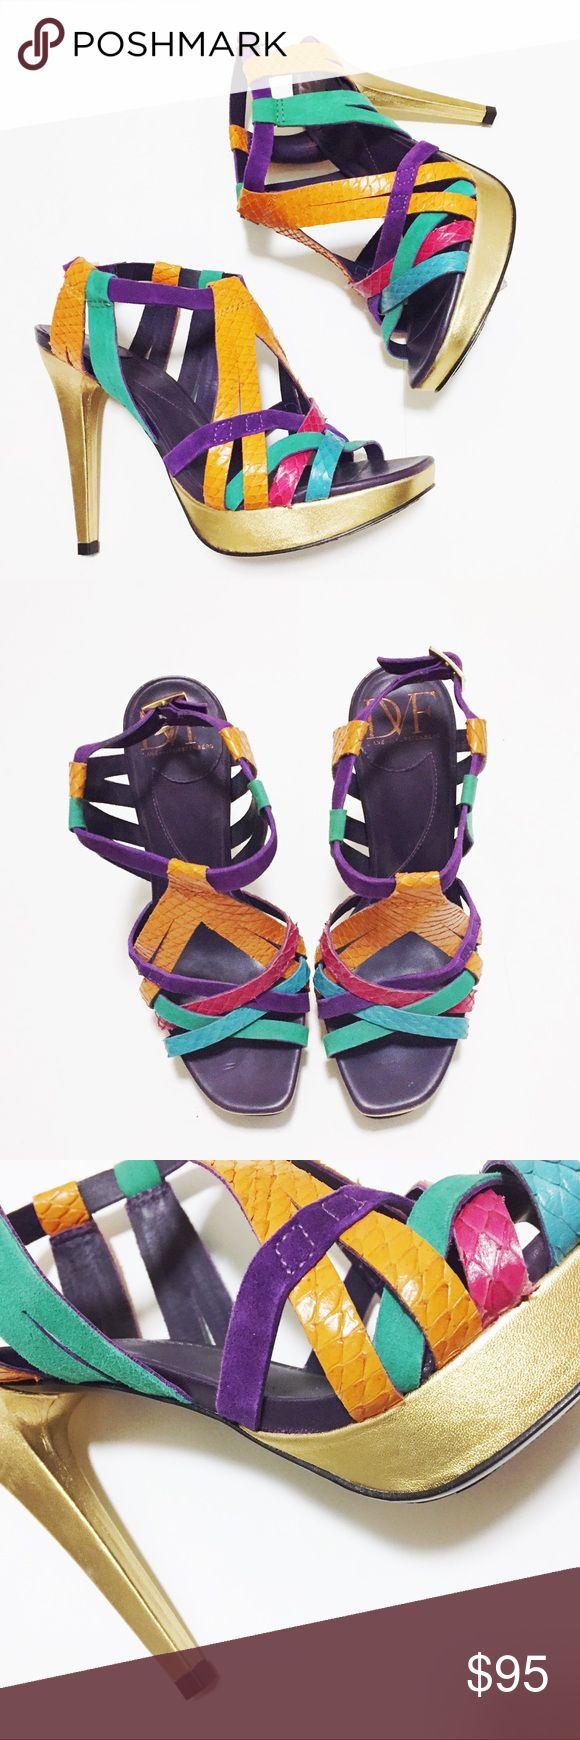 "DVF multi color dress sandals Beautiful multi color, multi material dress sandals by Diane Von Furstenberg. Never been worn, new without box. Heel height 4.5"" Diane Von Furstenberg Shoes Heels"